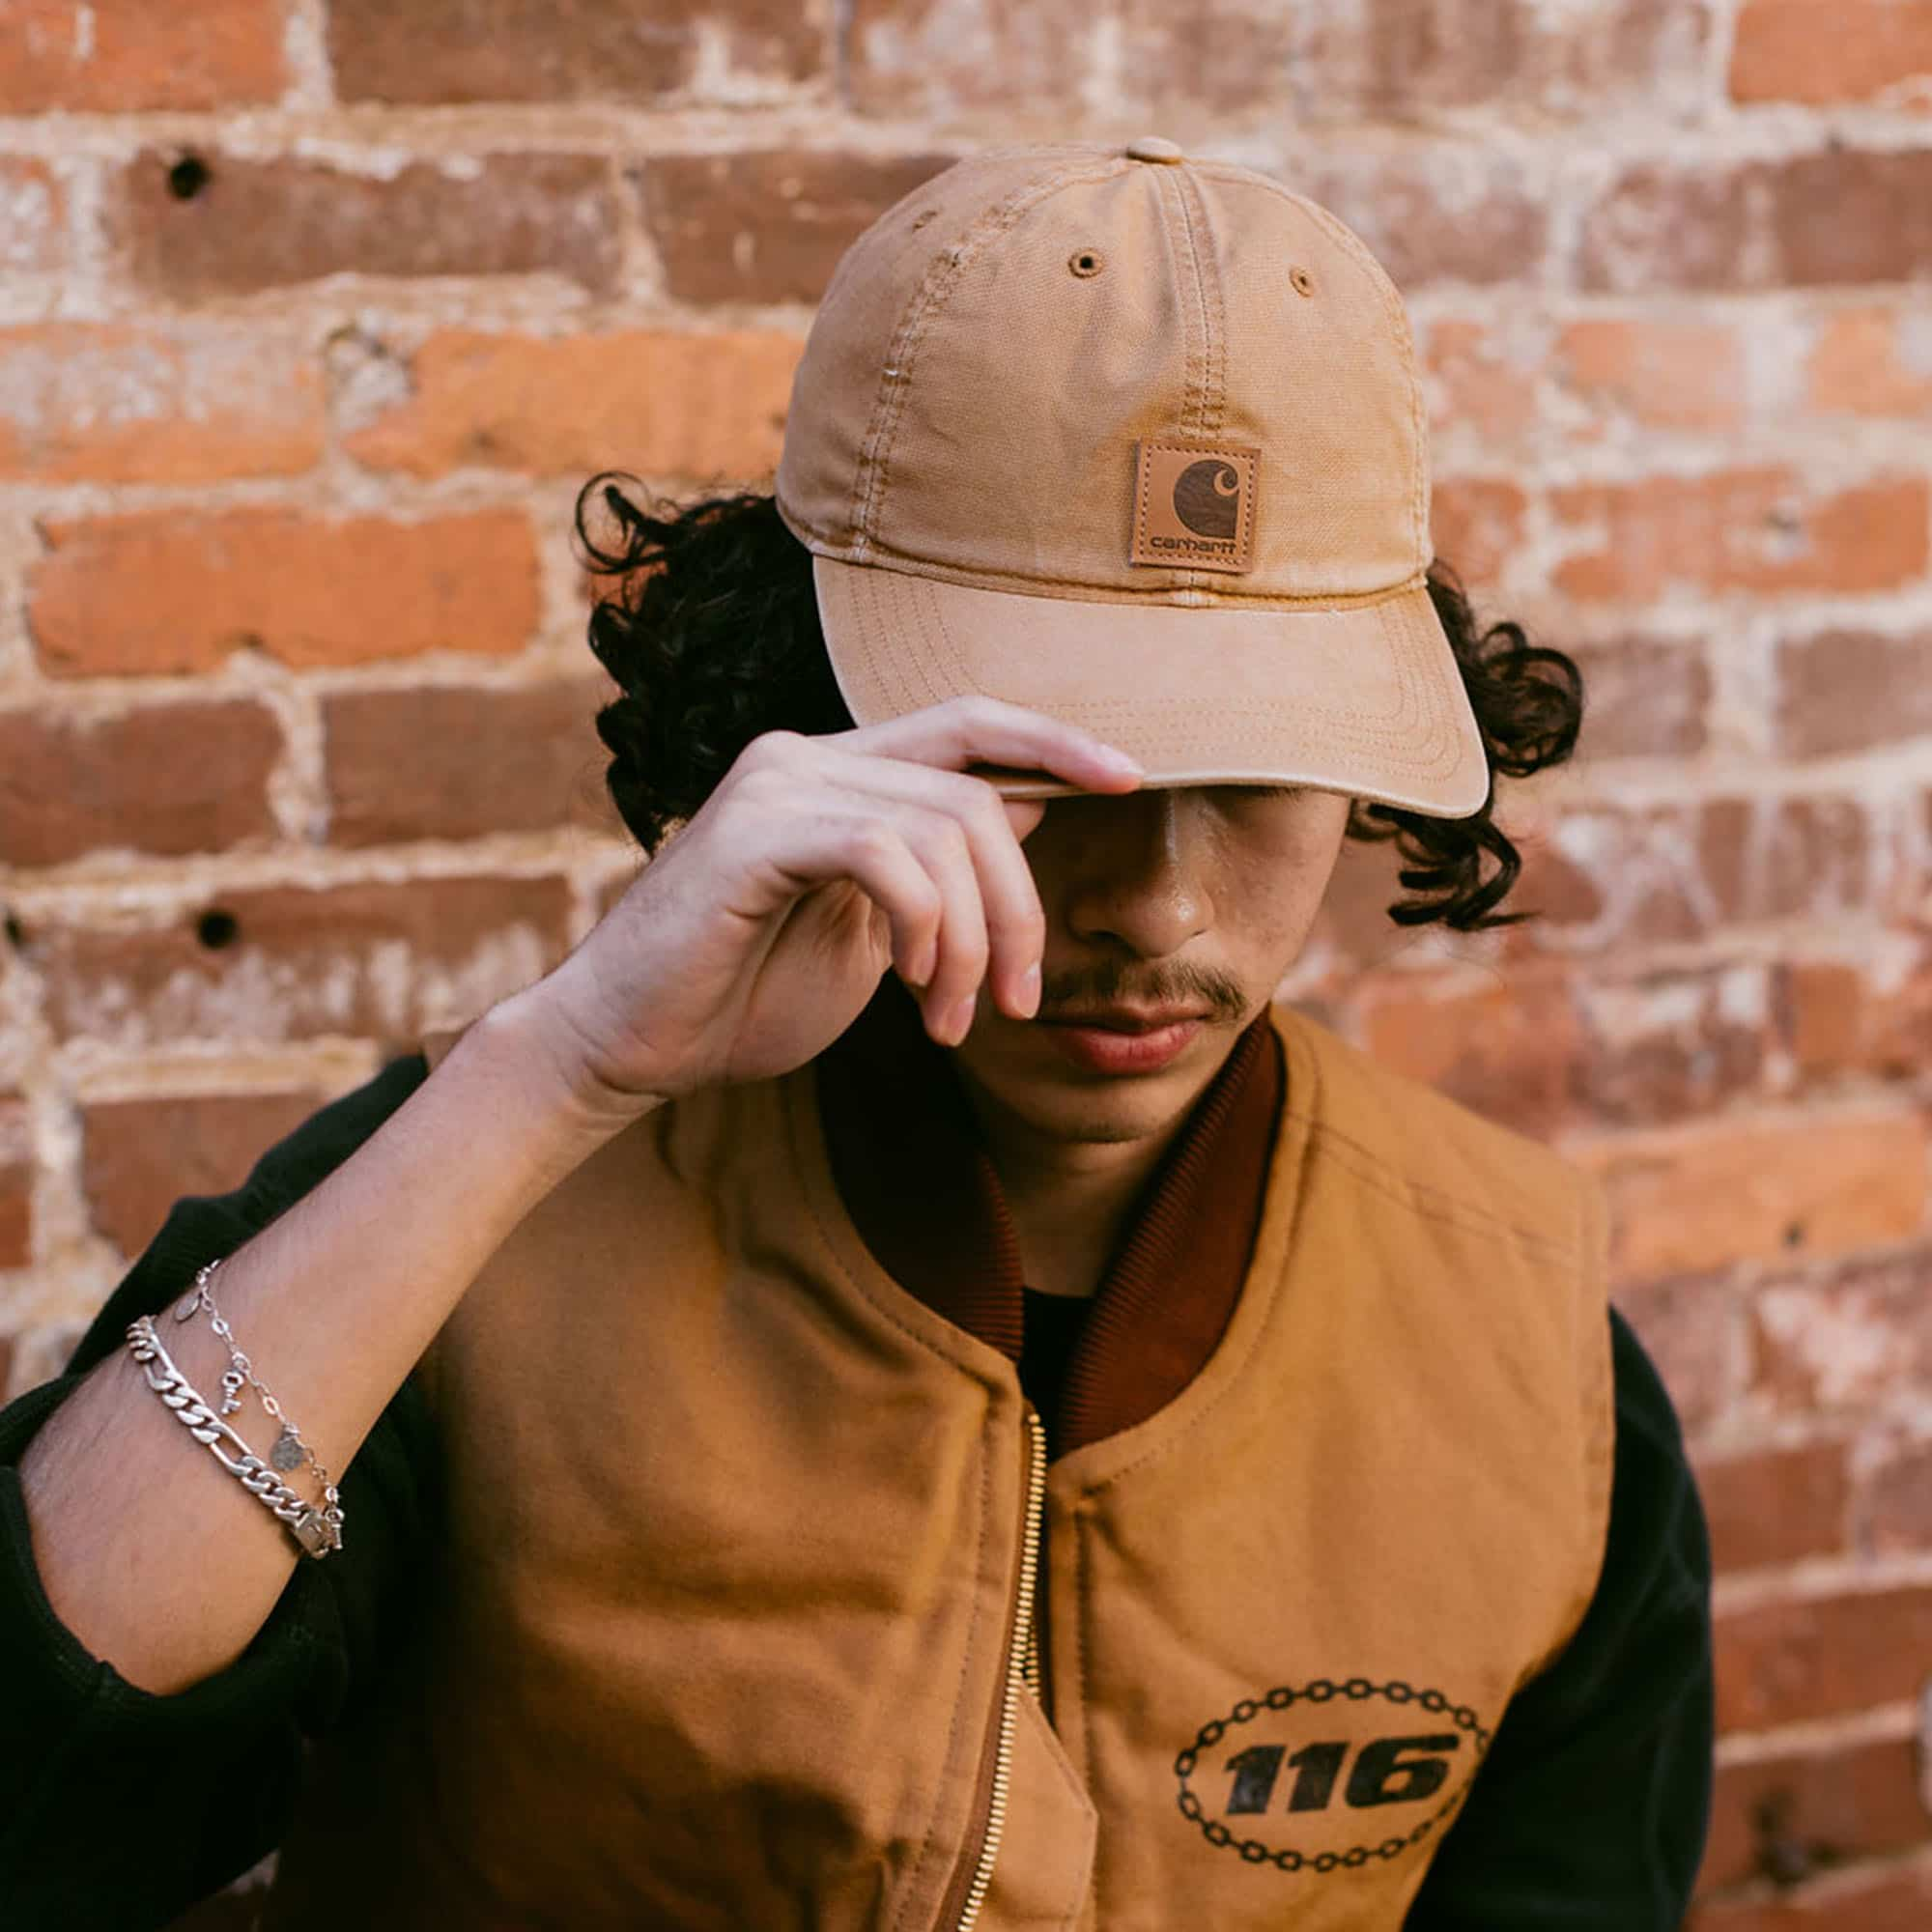 116 x Carhartt 'Unashamed' Dad Hat